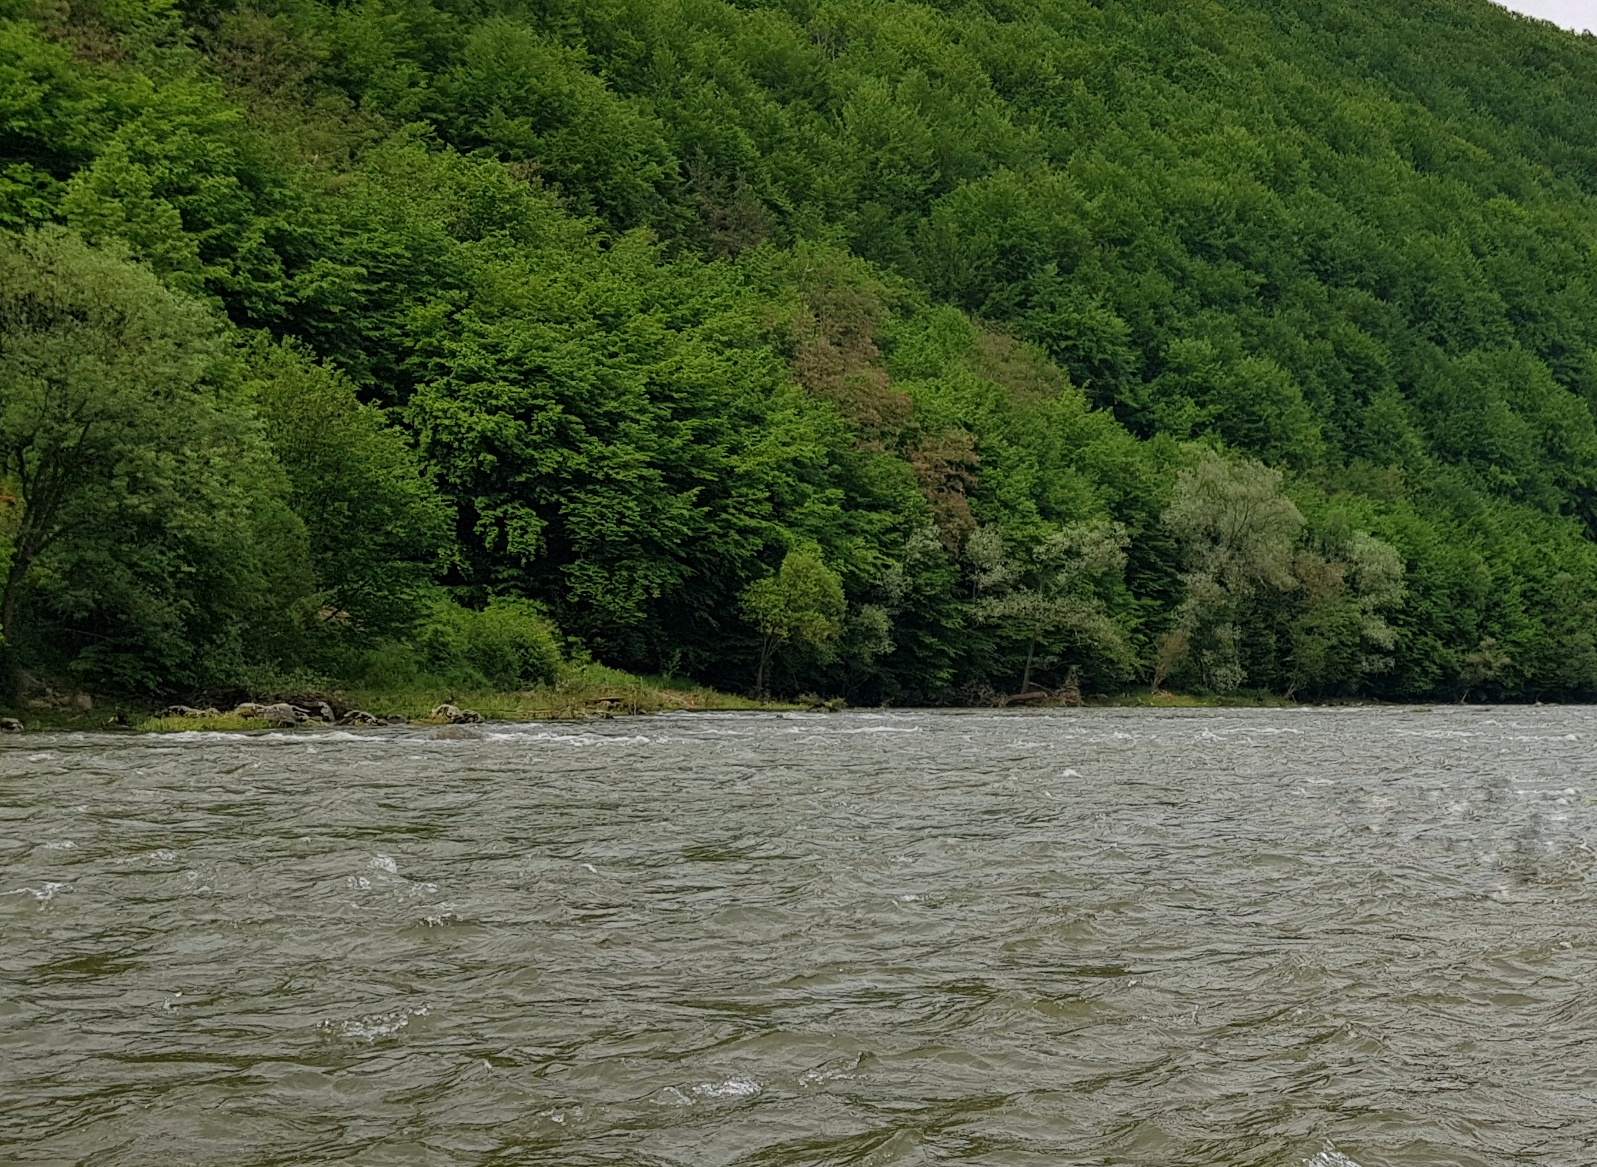 Rapids - ideal for wet fly fishing